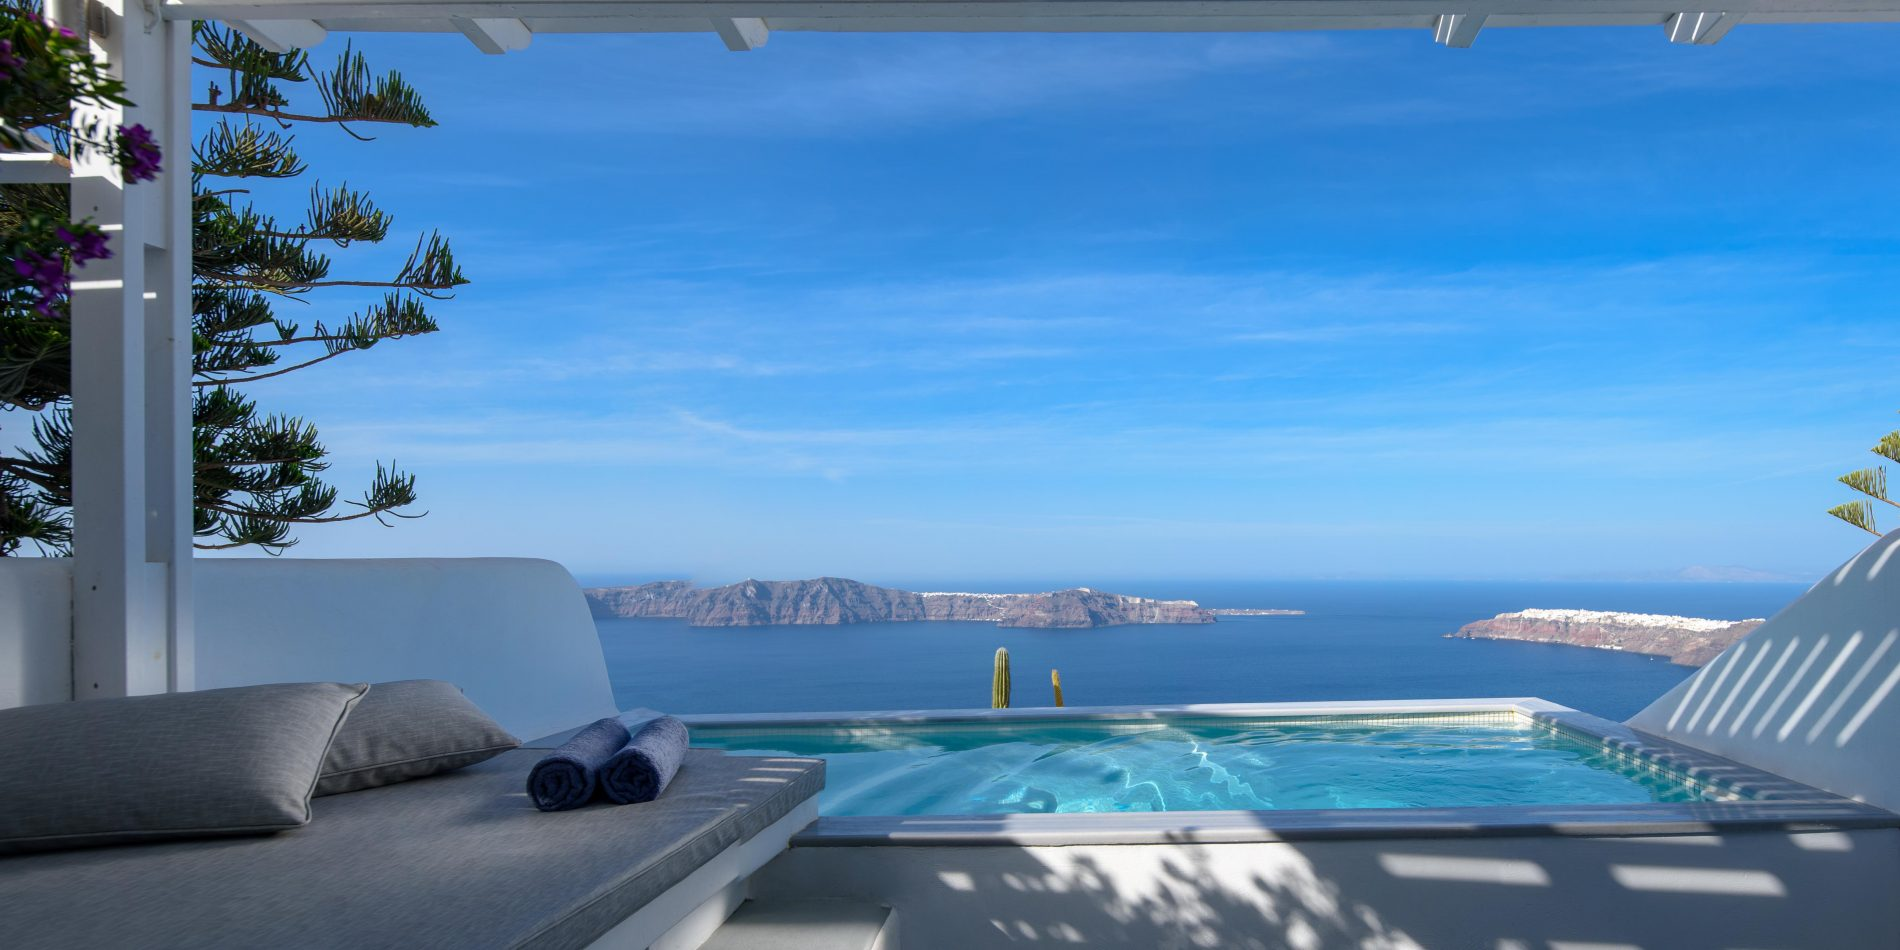 Andromeda Villas Hotel and Spa in Santorini island